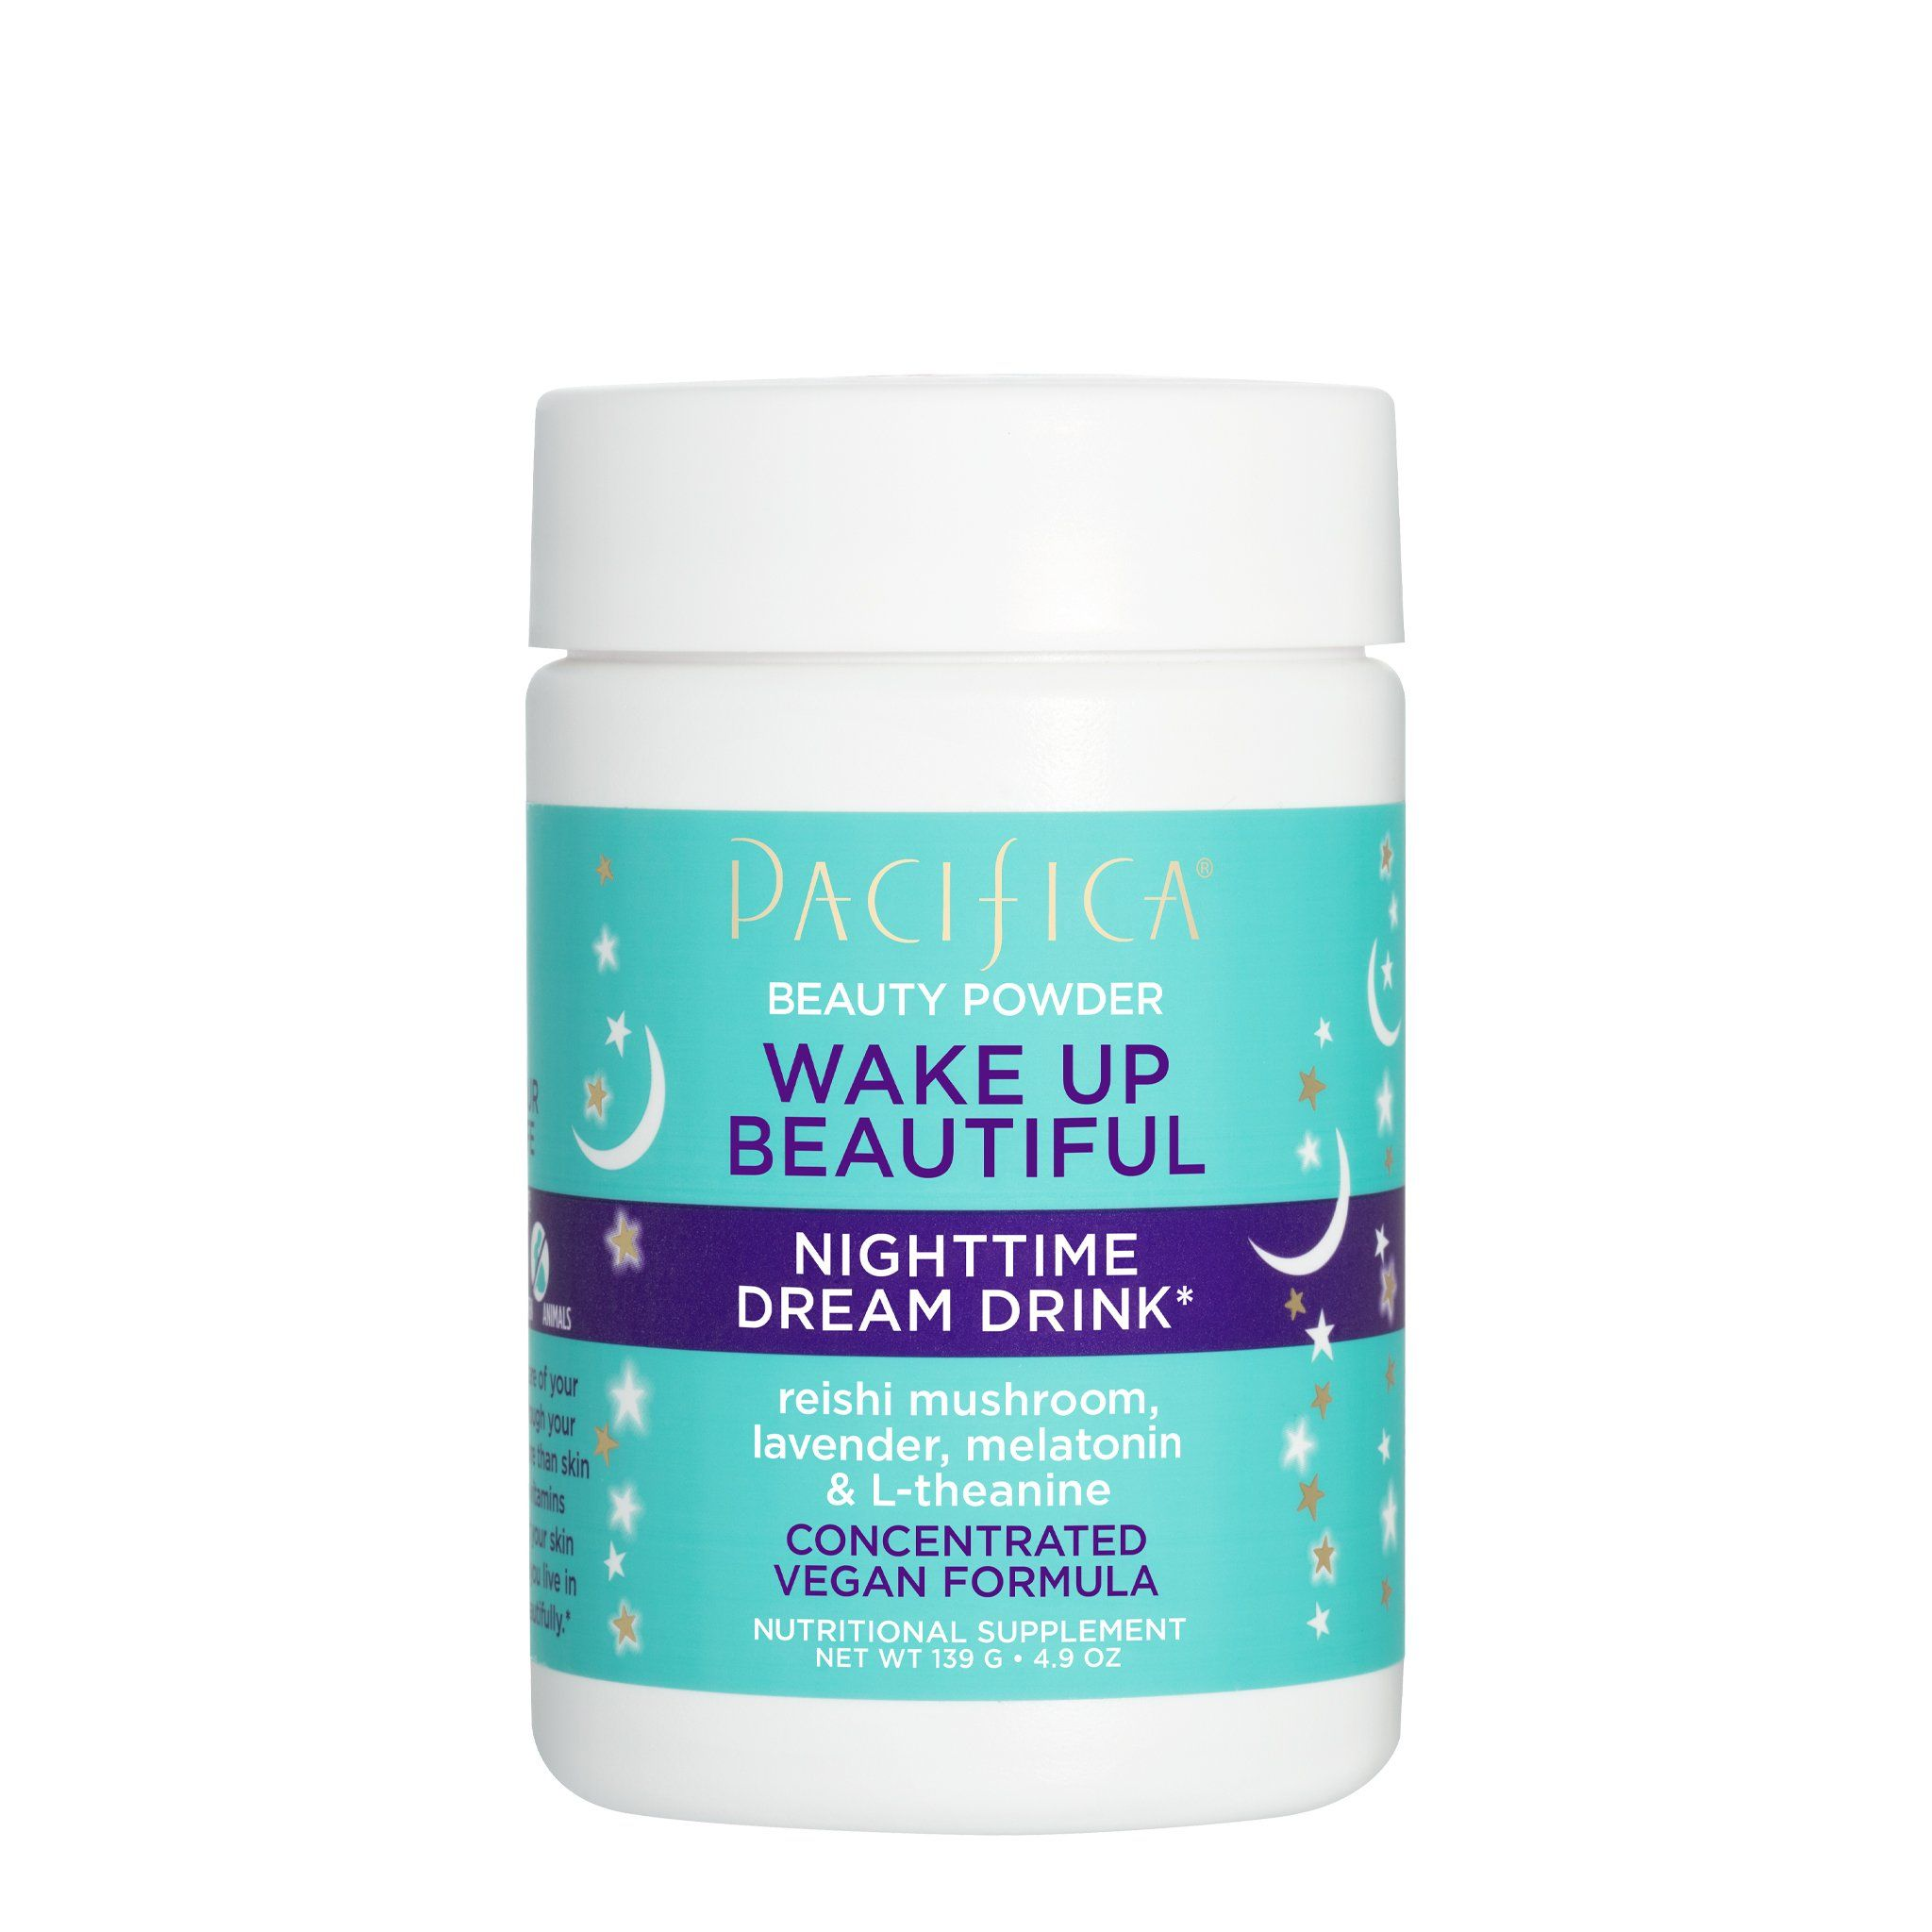 Wake Up Beautiful Nutritional Supplement In 2020 Essential Oil Deodorant Skin Health Supplements Packaging